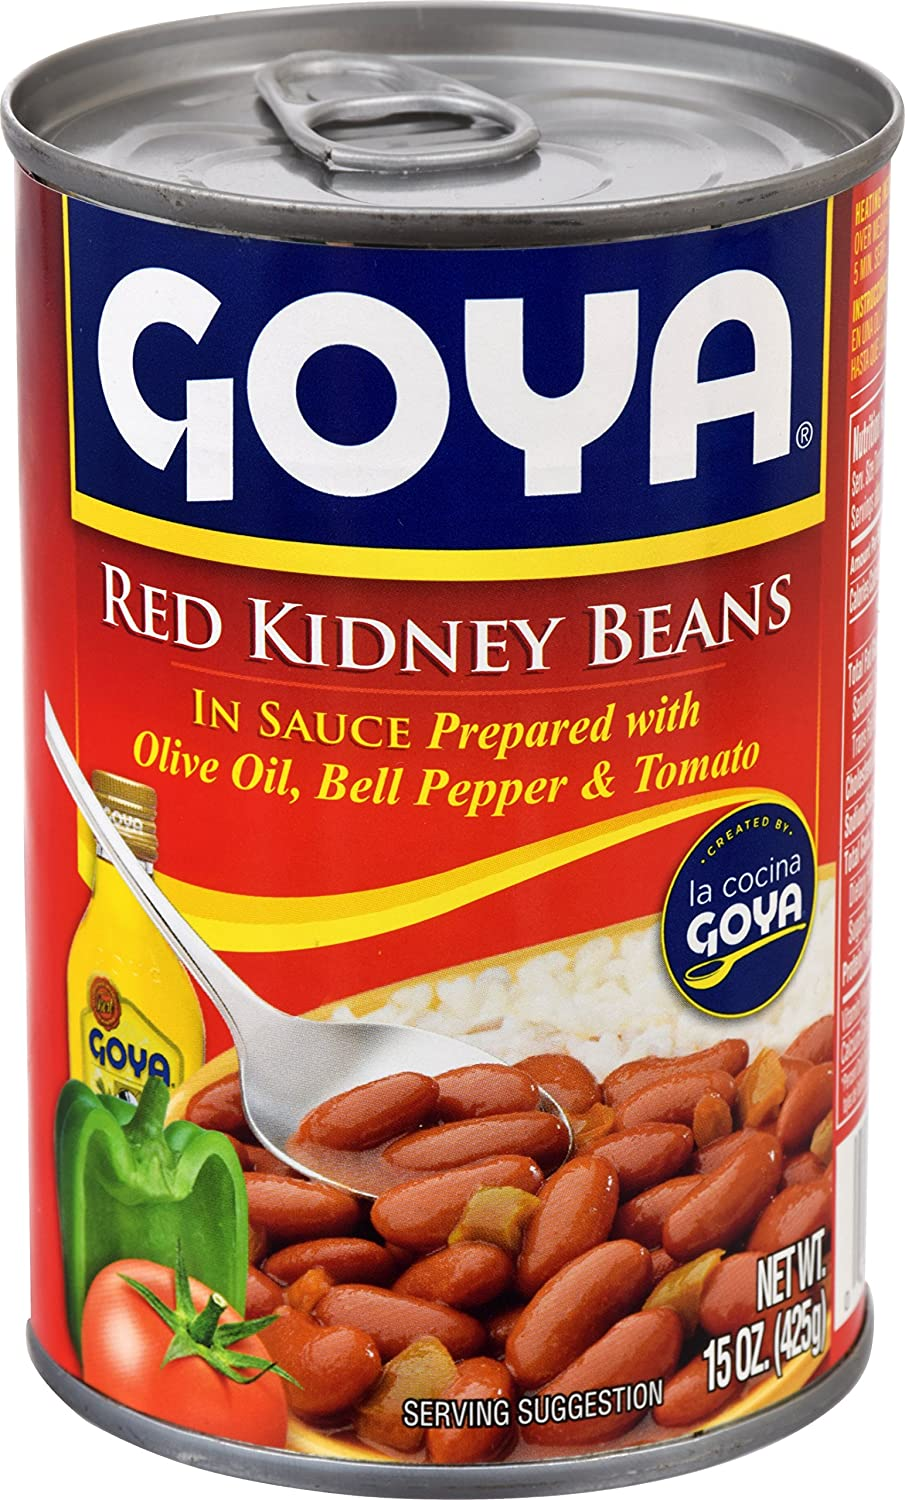 Amazon.com : Goya Foods Red Kidney Beans In Sauce, 15 oz : Kidney Beans Produce : Grocery & Gourmet Food